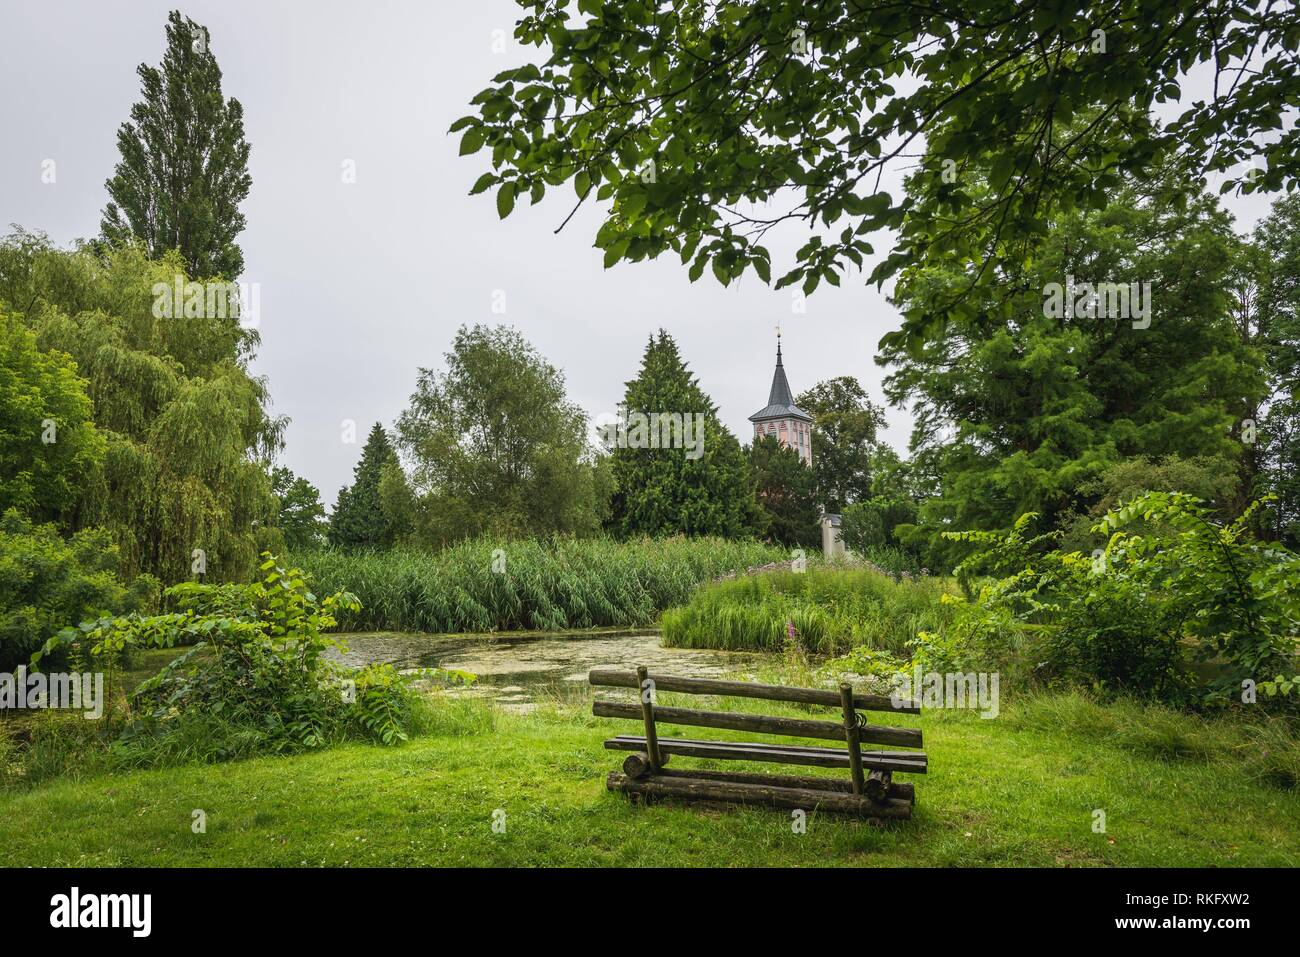 Lenne Park in Criewen, part of Schwedt Oder city in Brandenburg federal state in Germany. - Stock Image